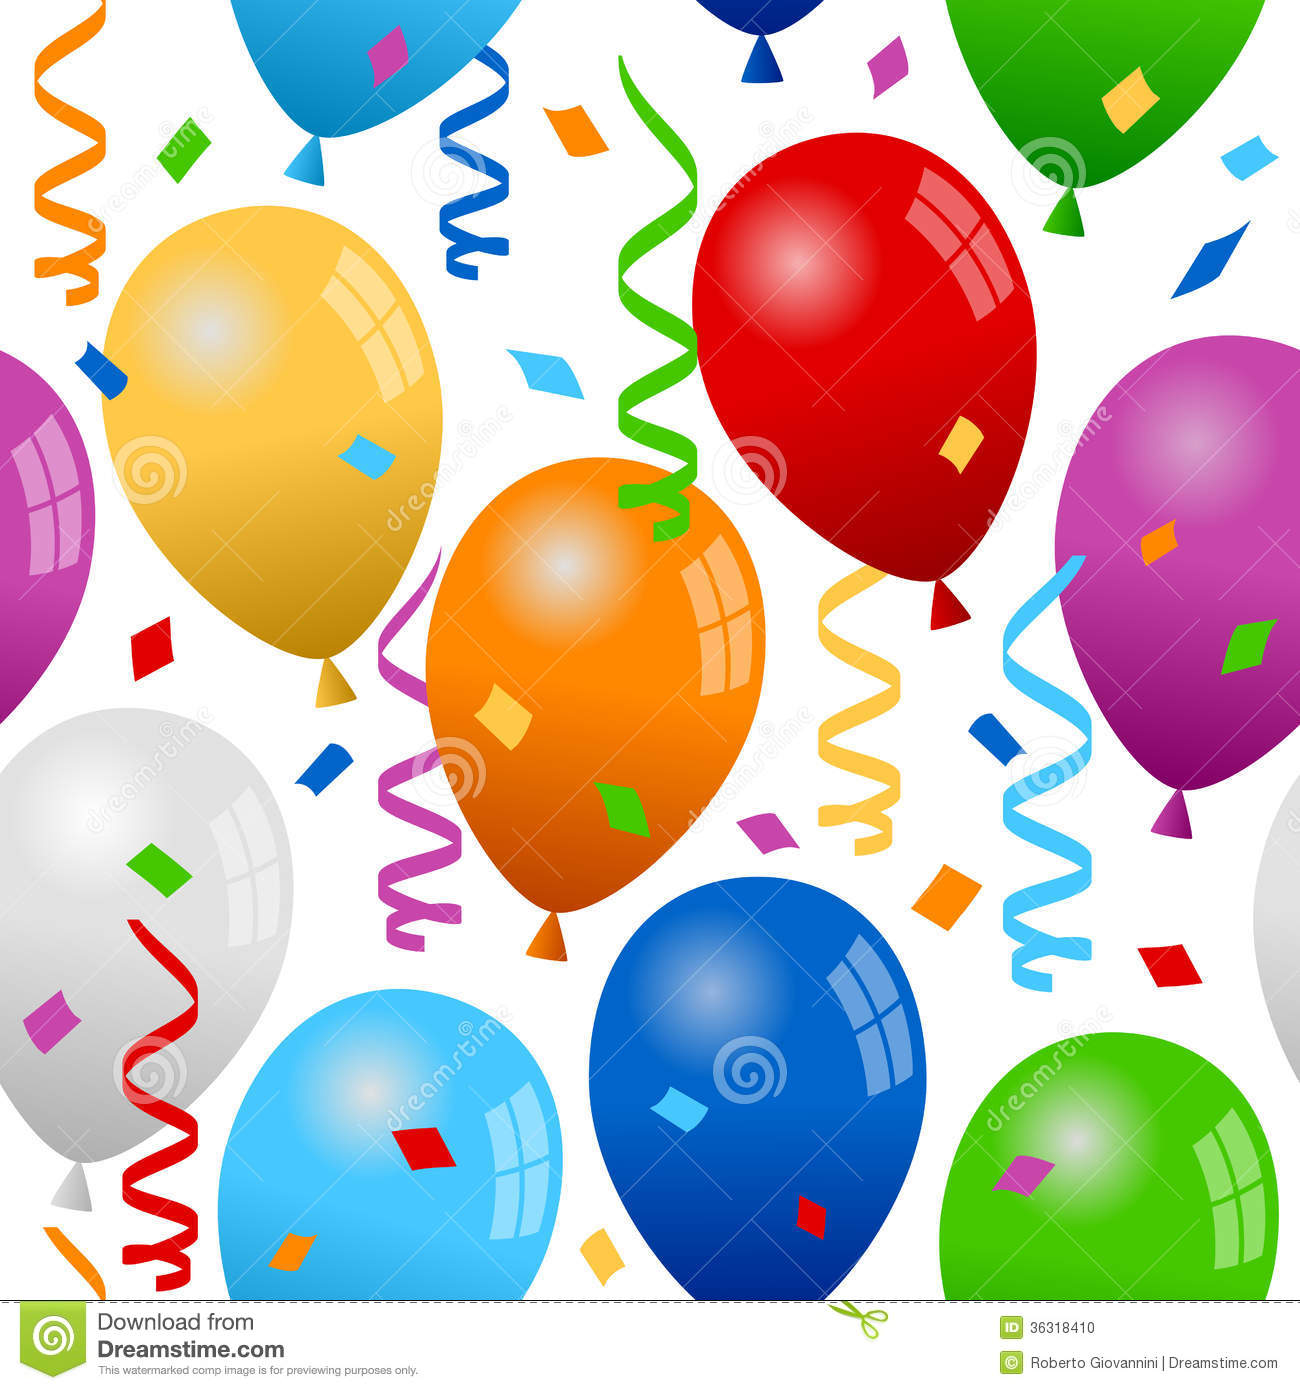 clipart balloons and streamers - photo #43